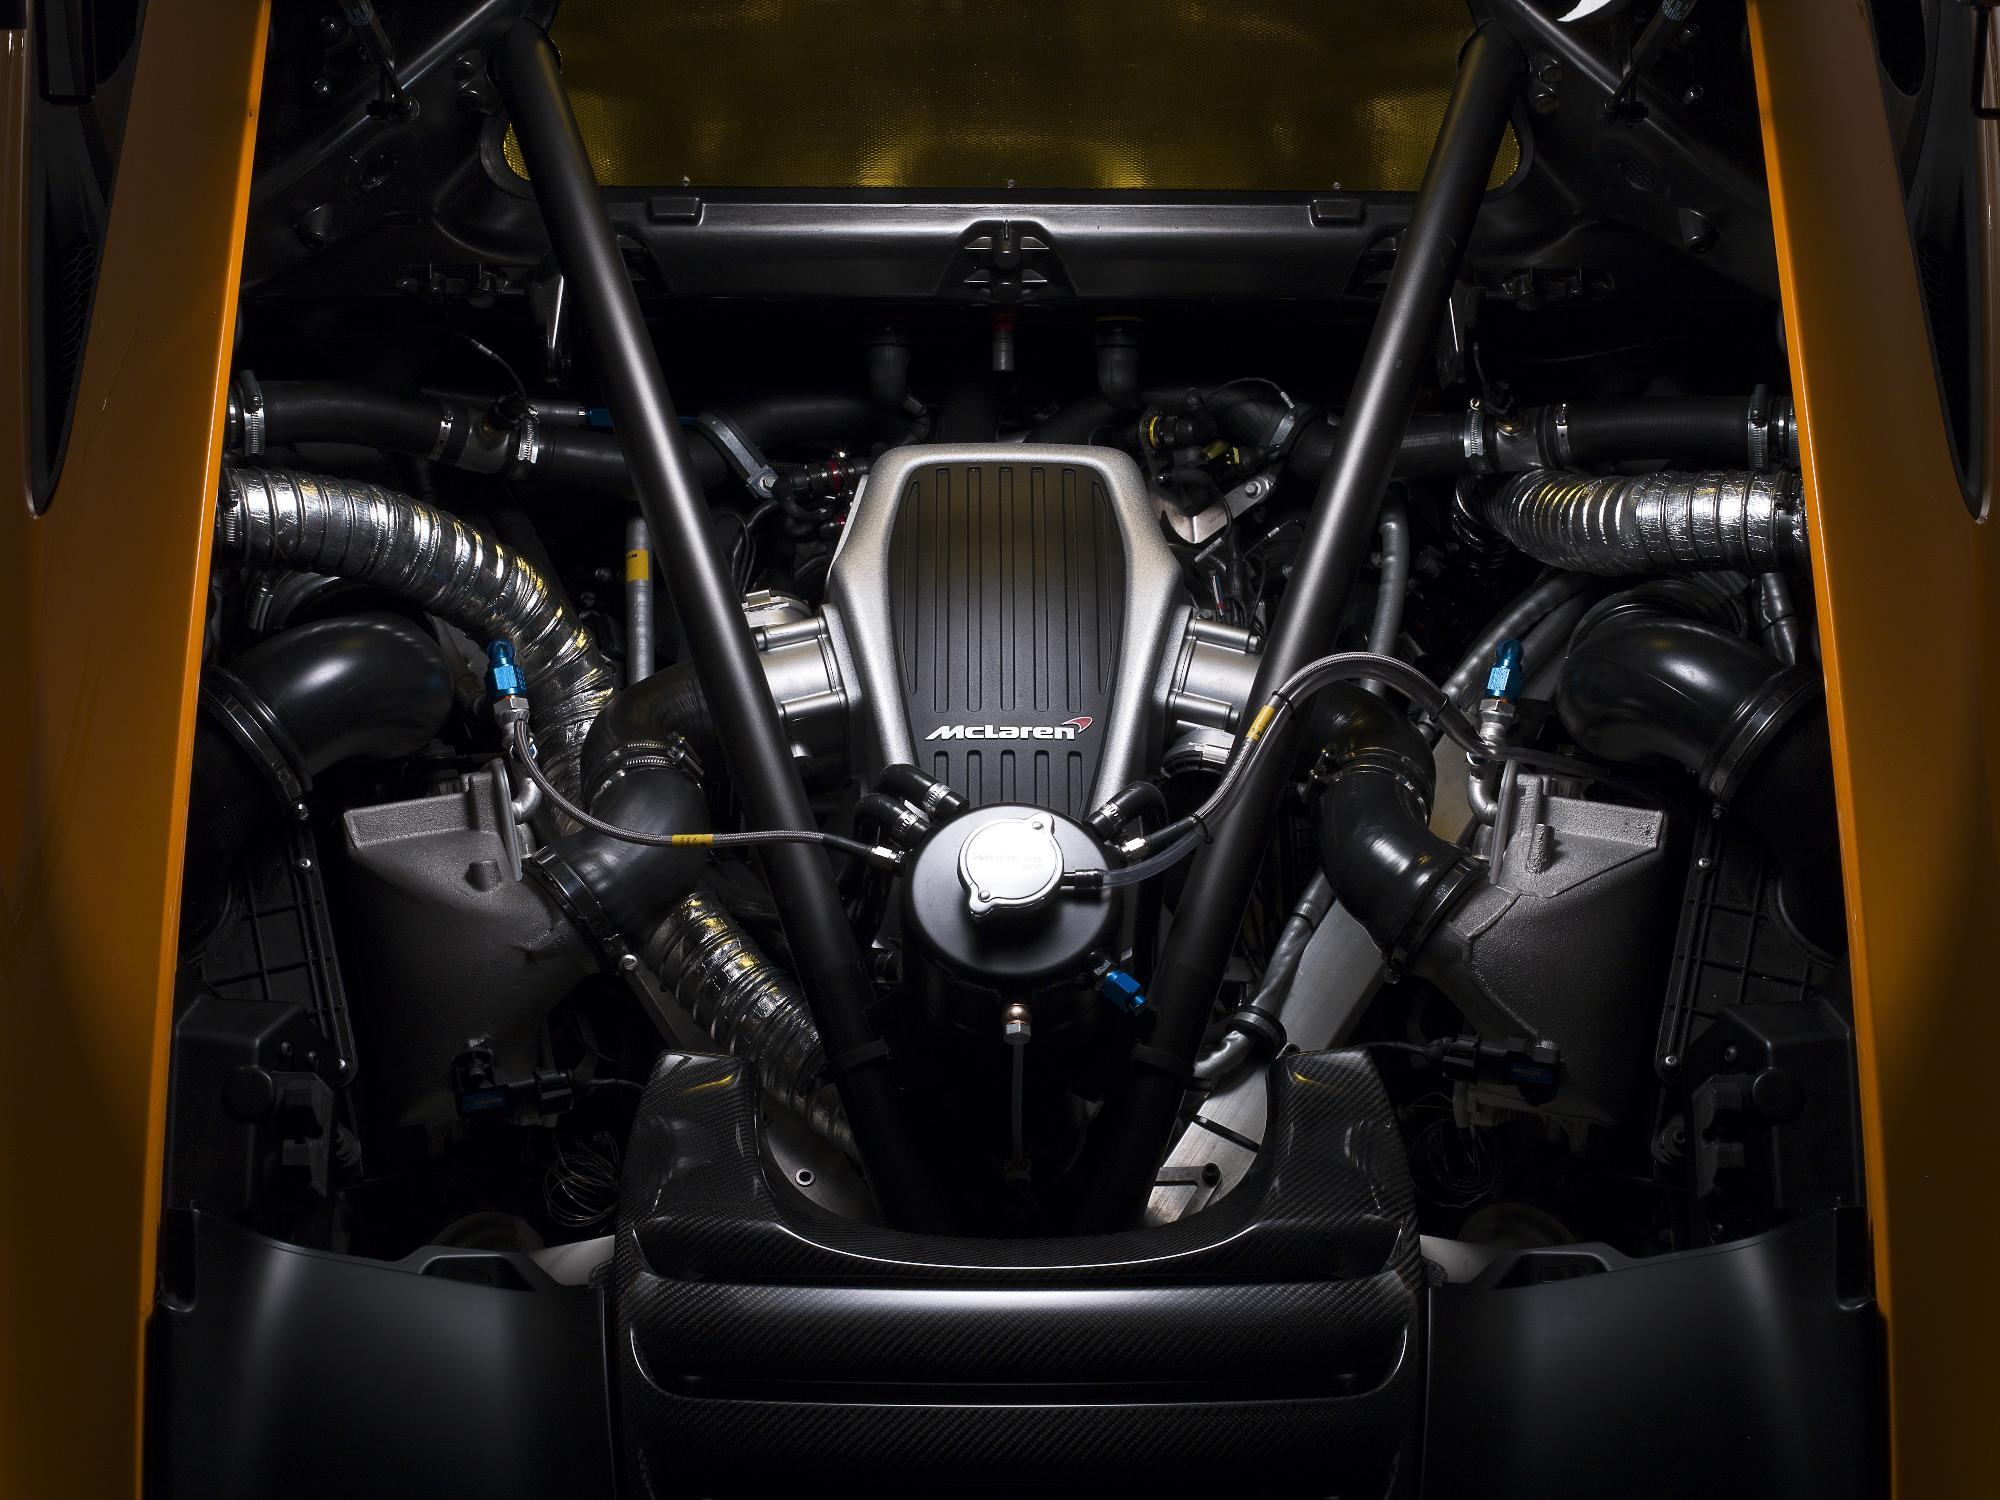 McLaren MP4-12C Can-Am Engine